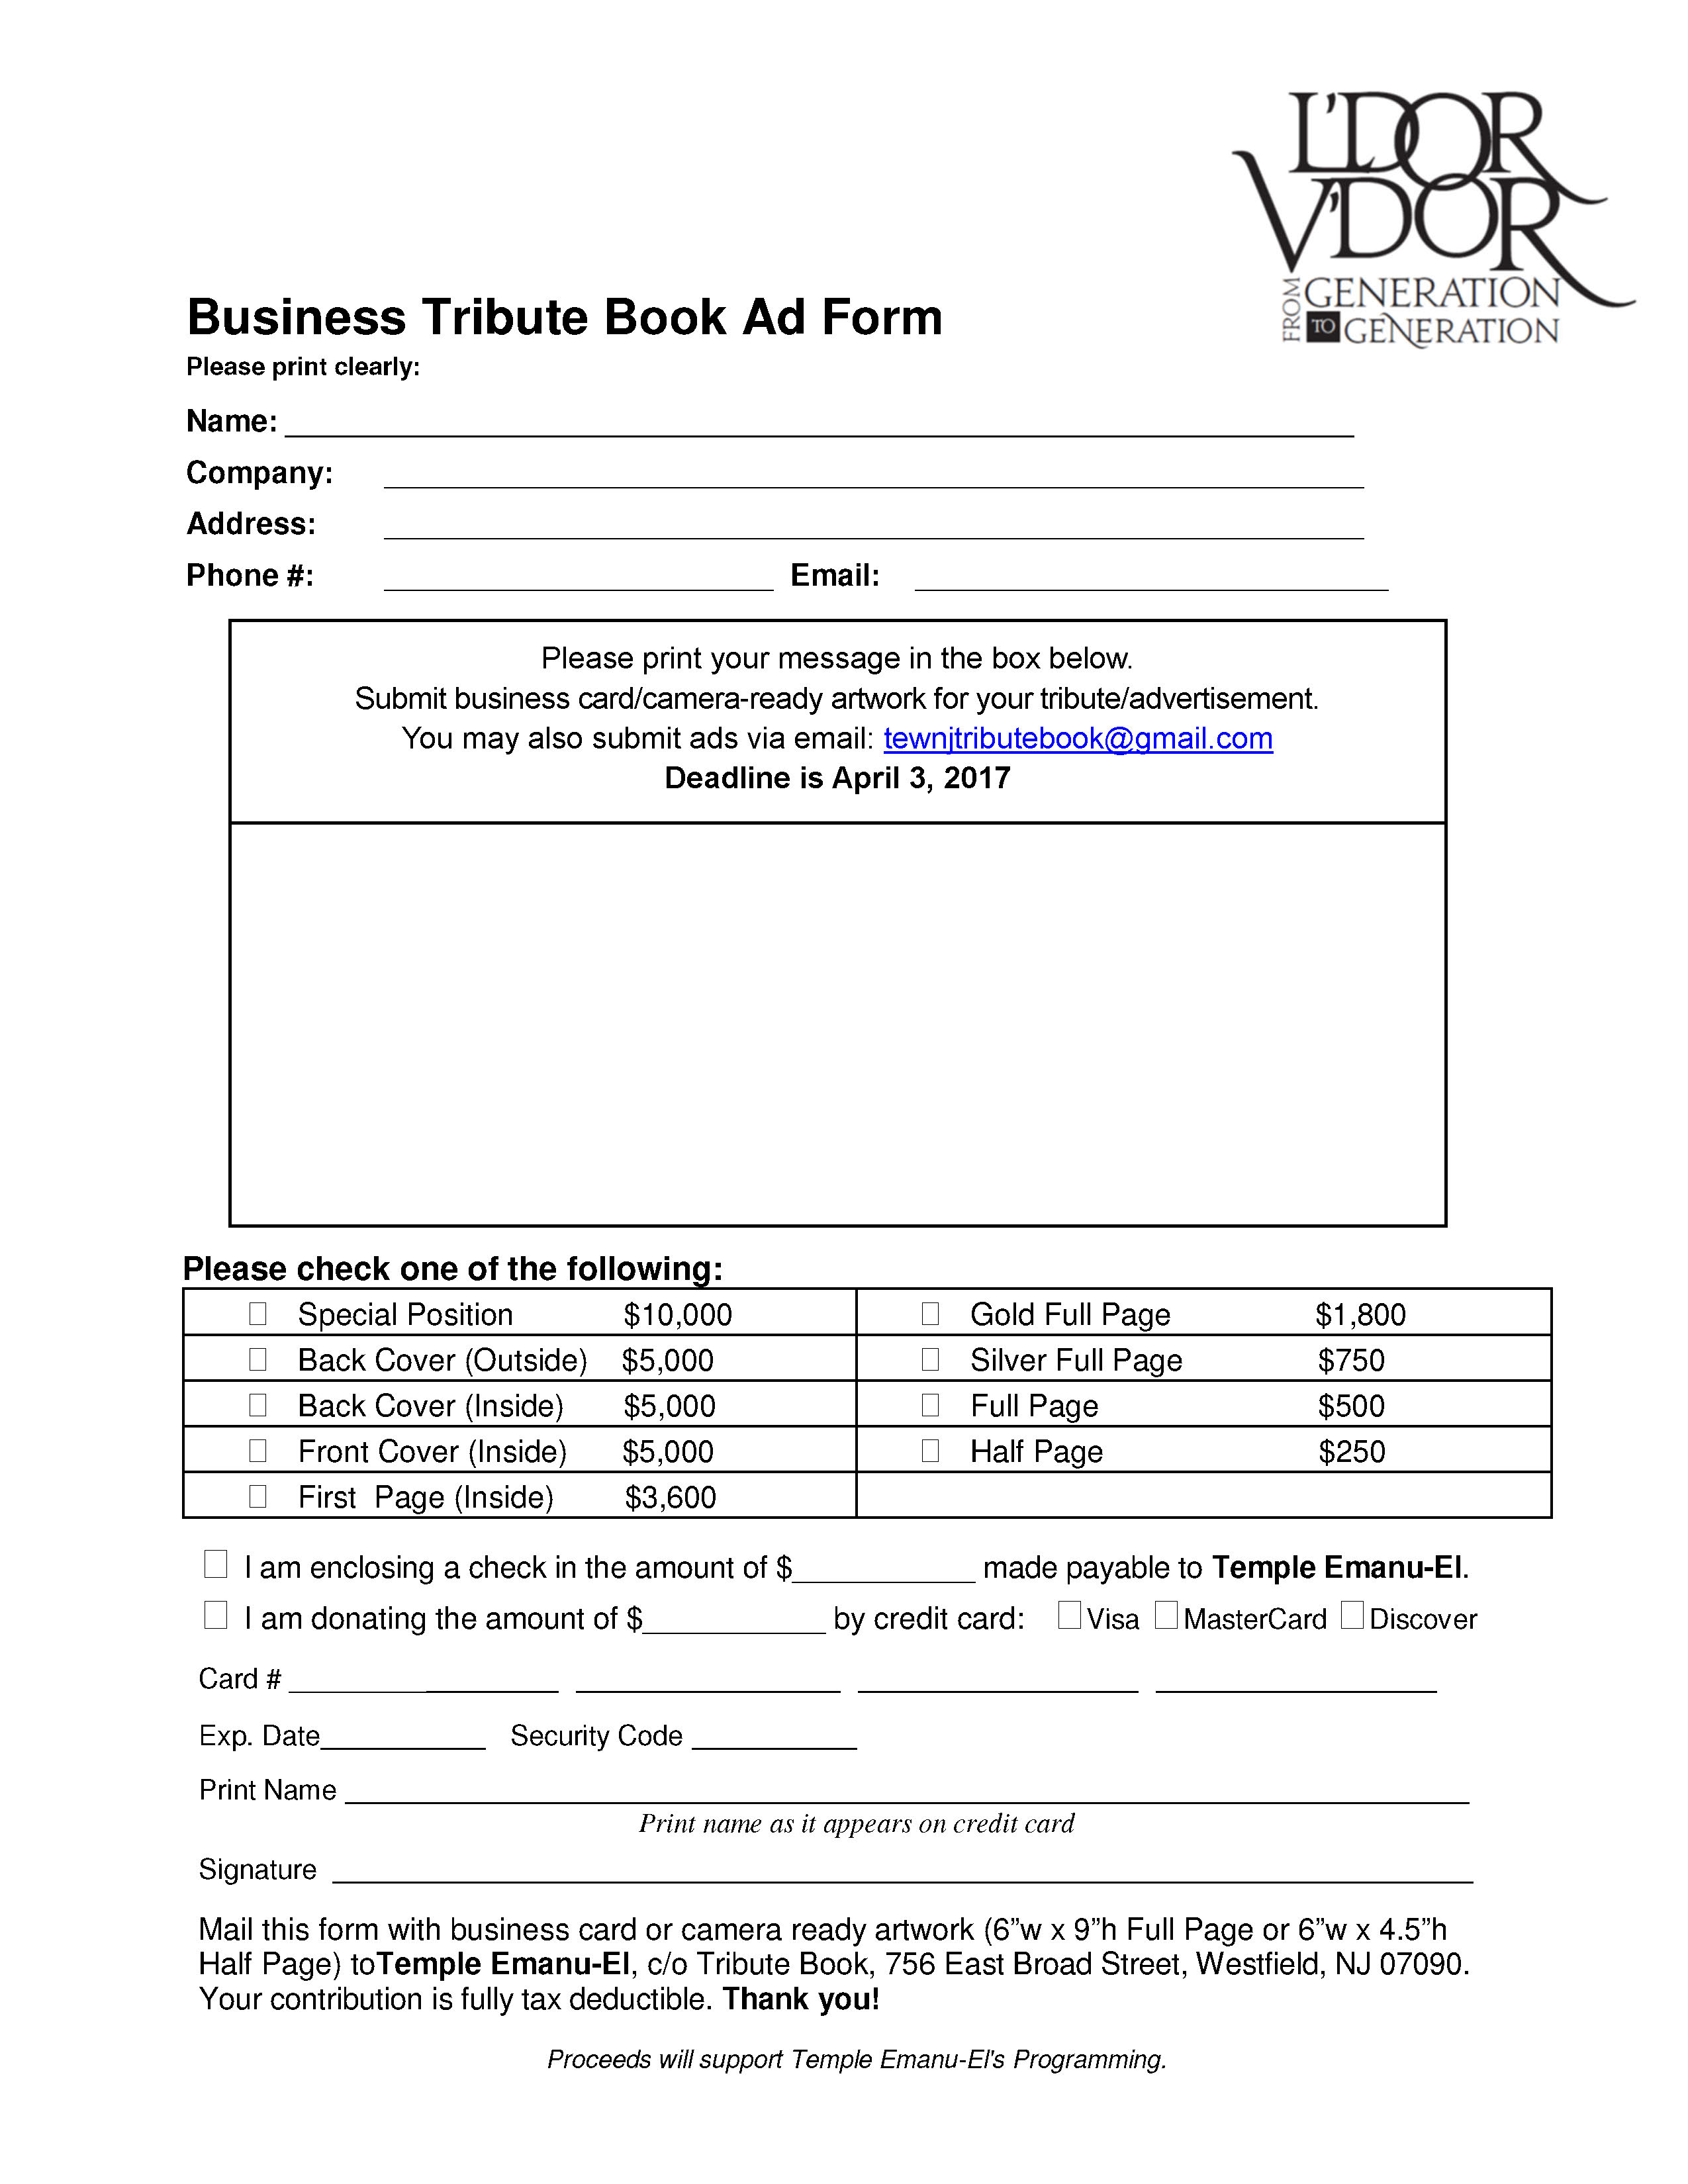 2017 Spring Gala Tribute Book Business order form